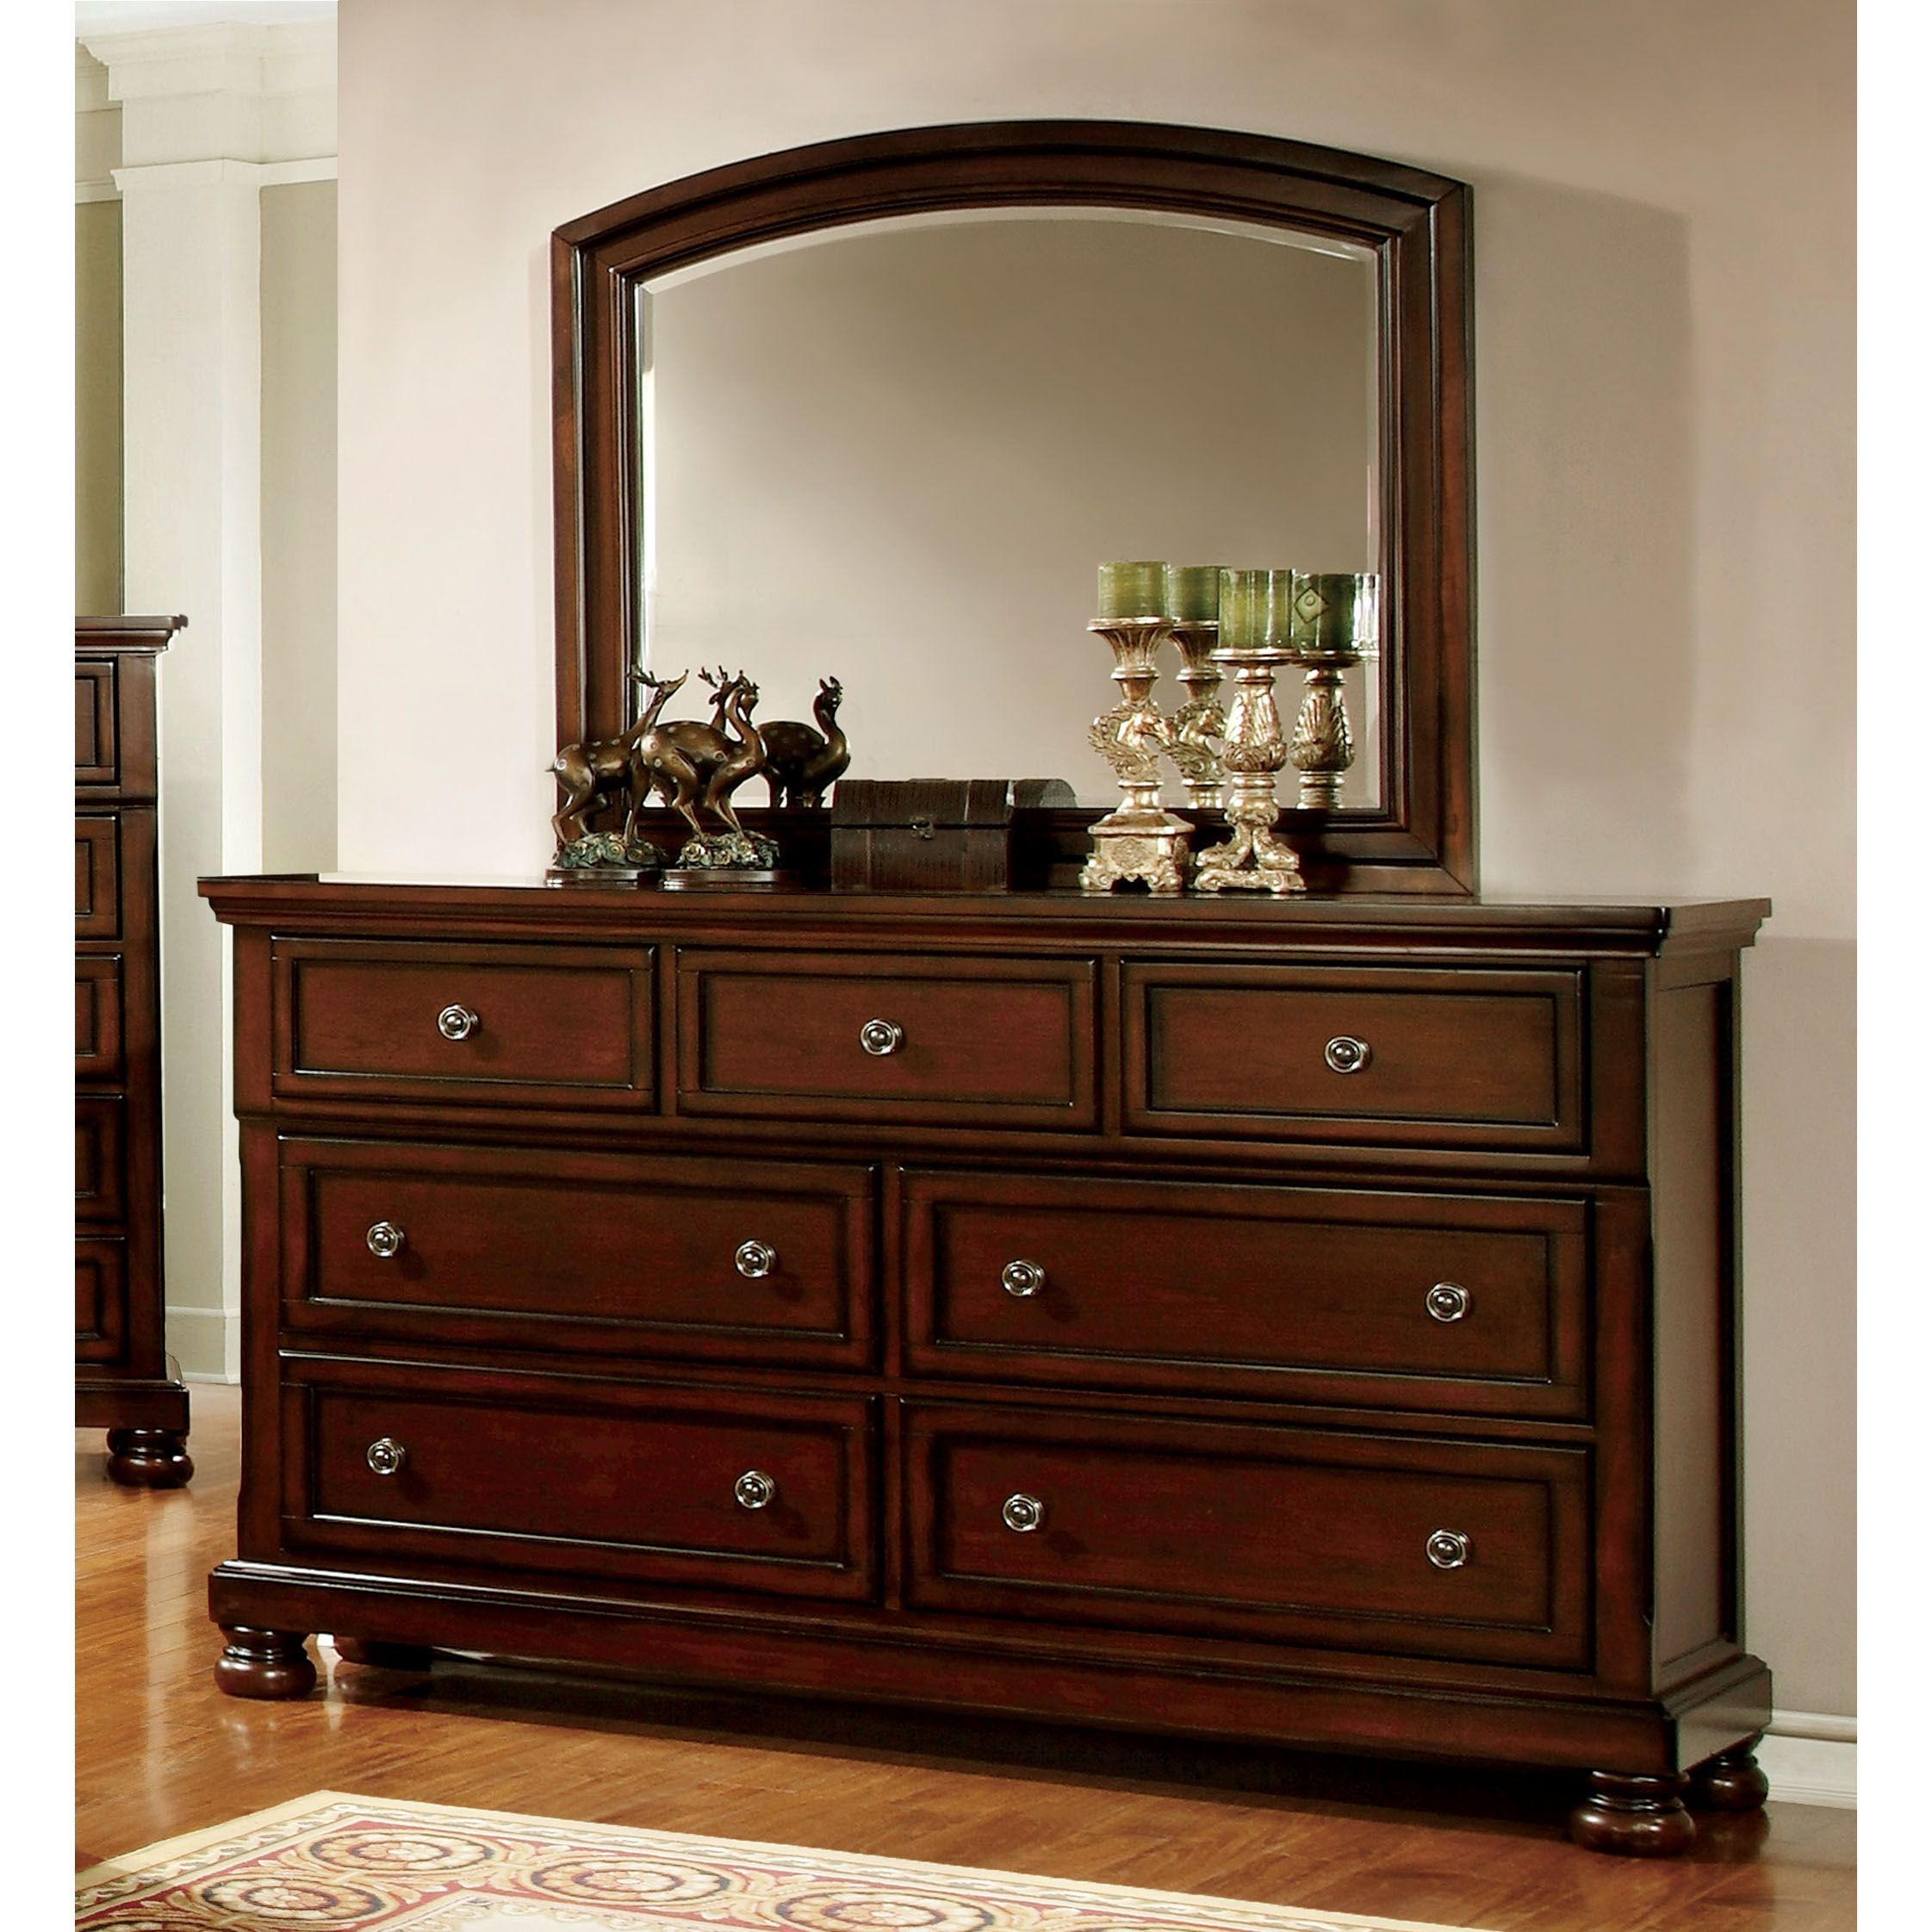 Home Goods Bedroom Furniture: Metal Bedroom Furniture Home Goods: Free Shipping On